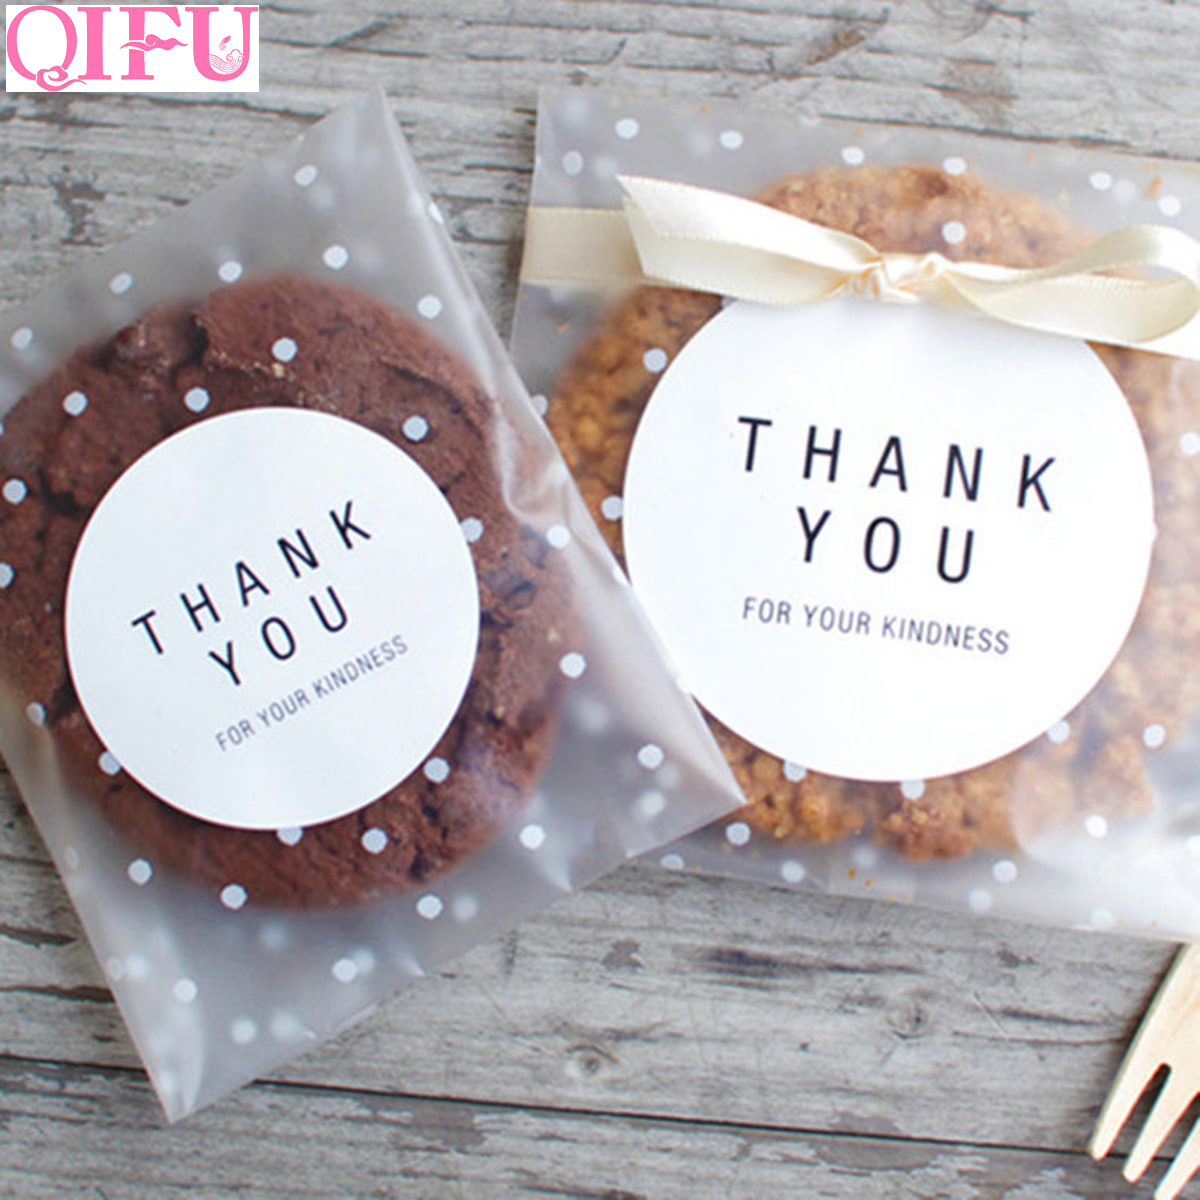 QIFU 100pcs/60pcs Transparent Plastic Bag Candy Cookie Gift Bag Frosted OPP Birthday Party Candy Packaging Bag Pouch Gift Box